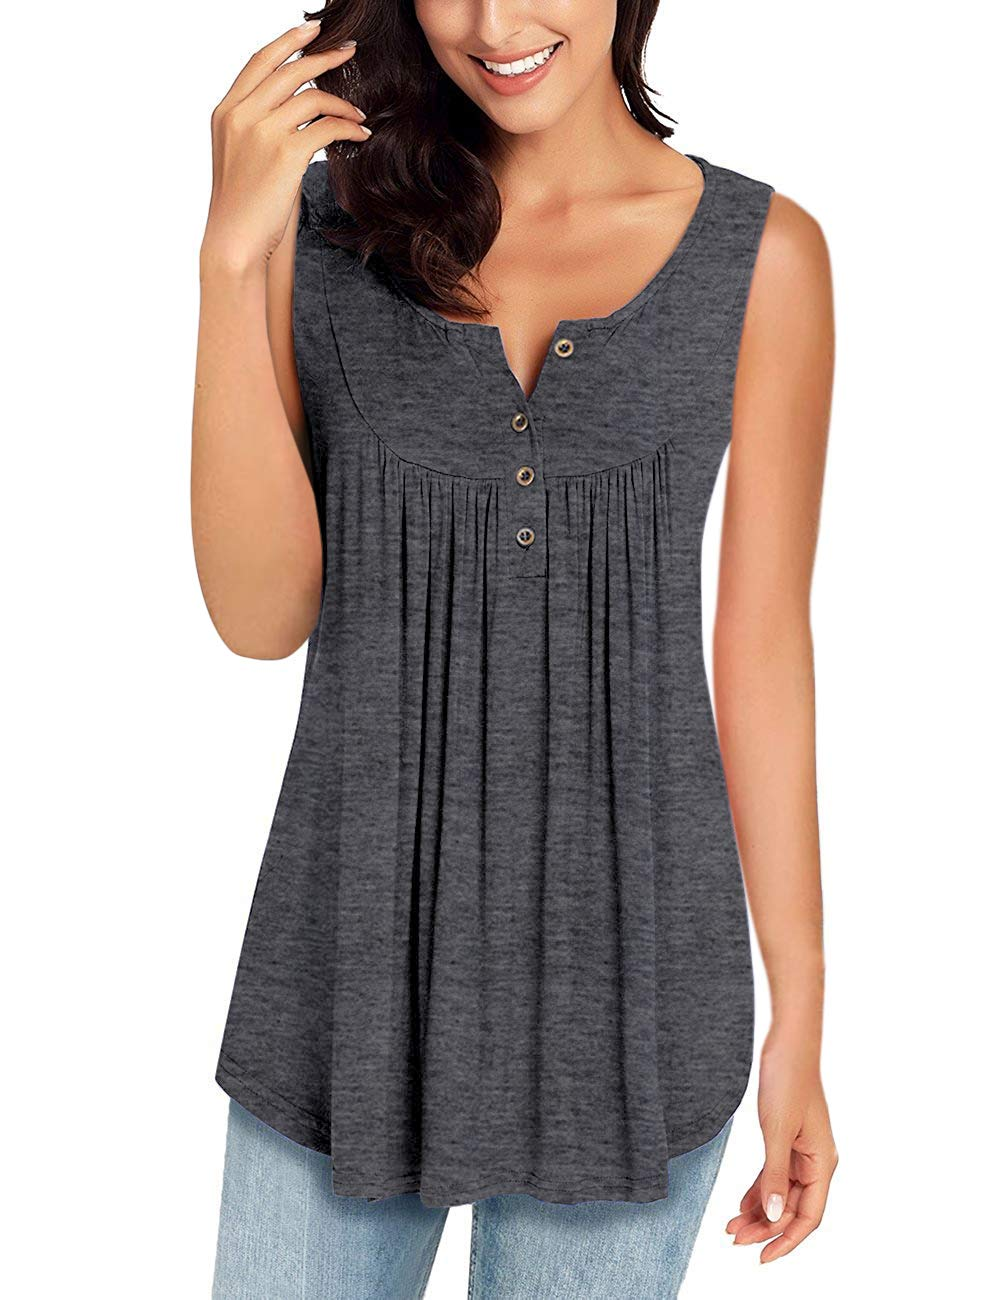 MIROL Womens Spring Sleeveless V Neck Solid Color Casual Swing Shirts Flowy Tank Tops Maternity Blouses with Buttons Gray by MIROL